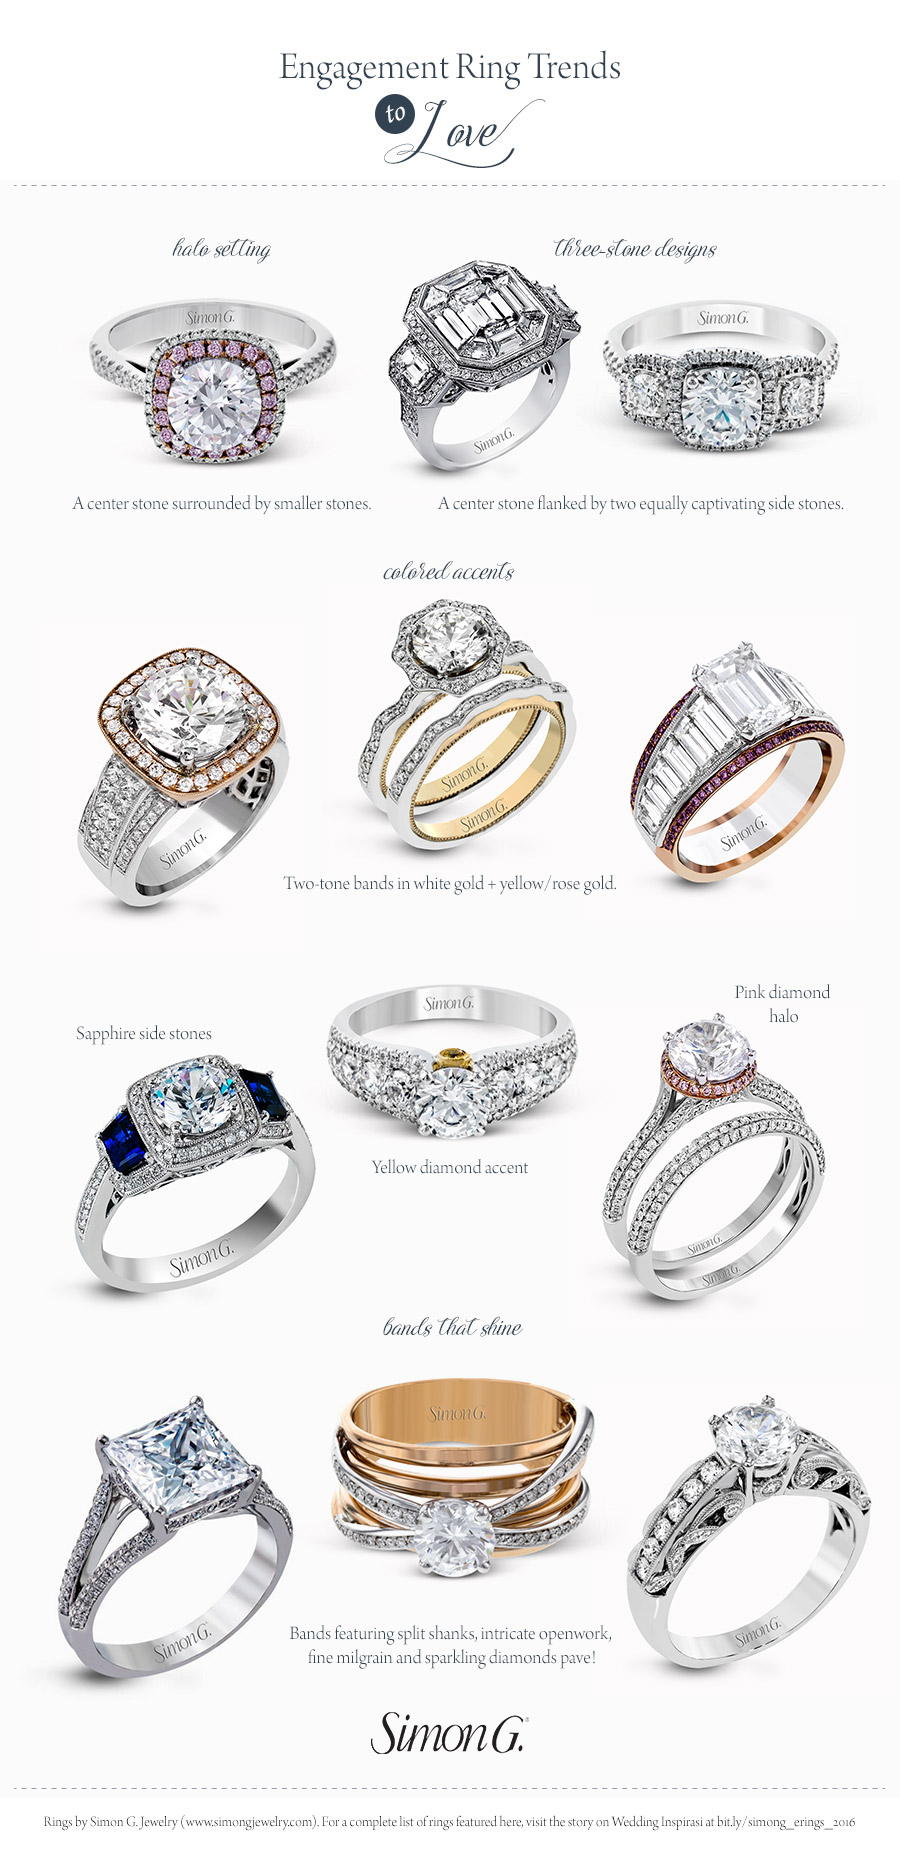 simon g engagement ring styles for every bride wedding With popular wedding ring styles 2017